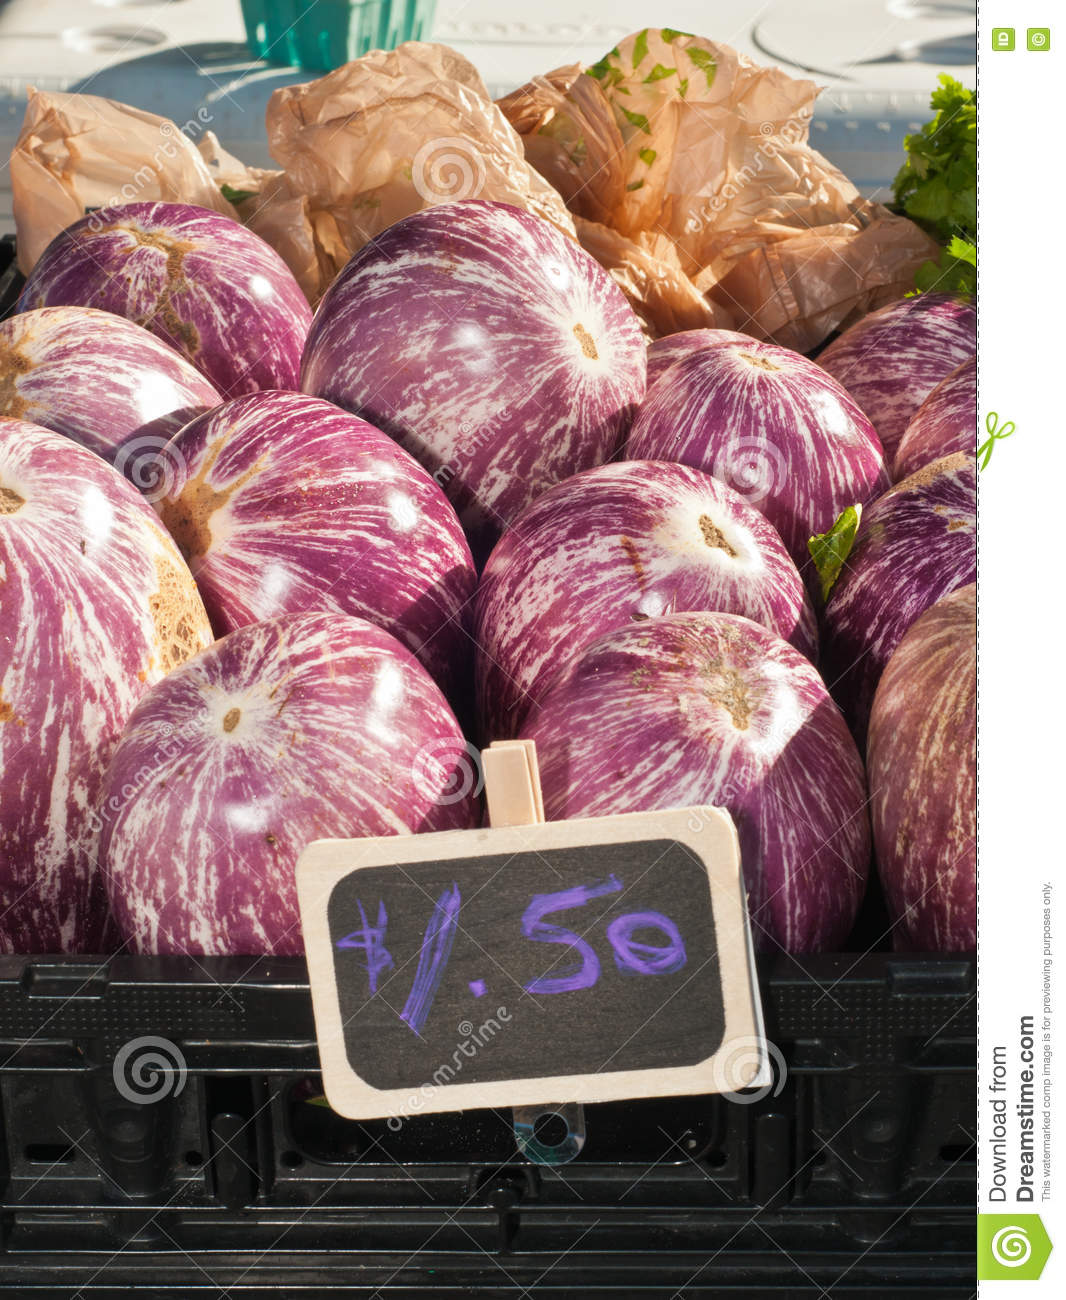 Eggplants for sale stock image  Image of sale, plastic